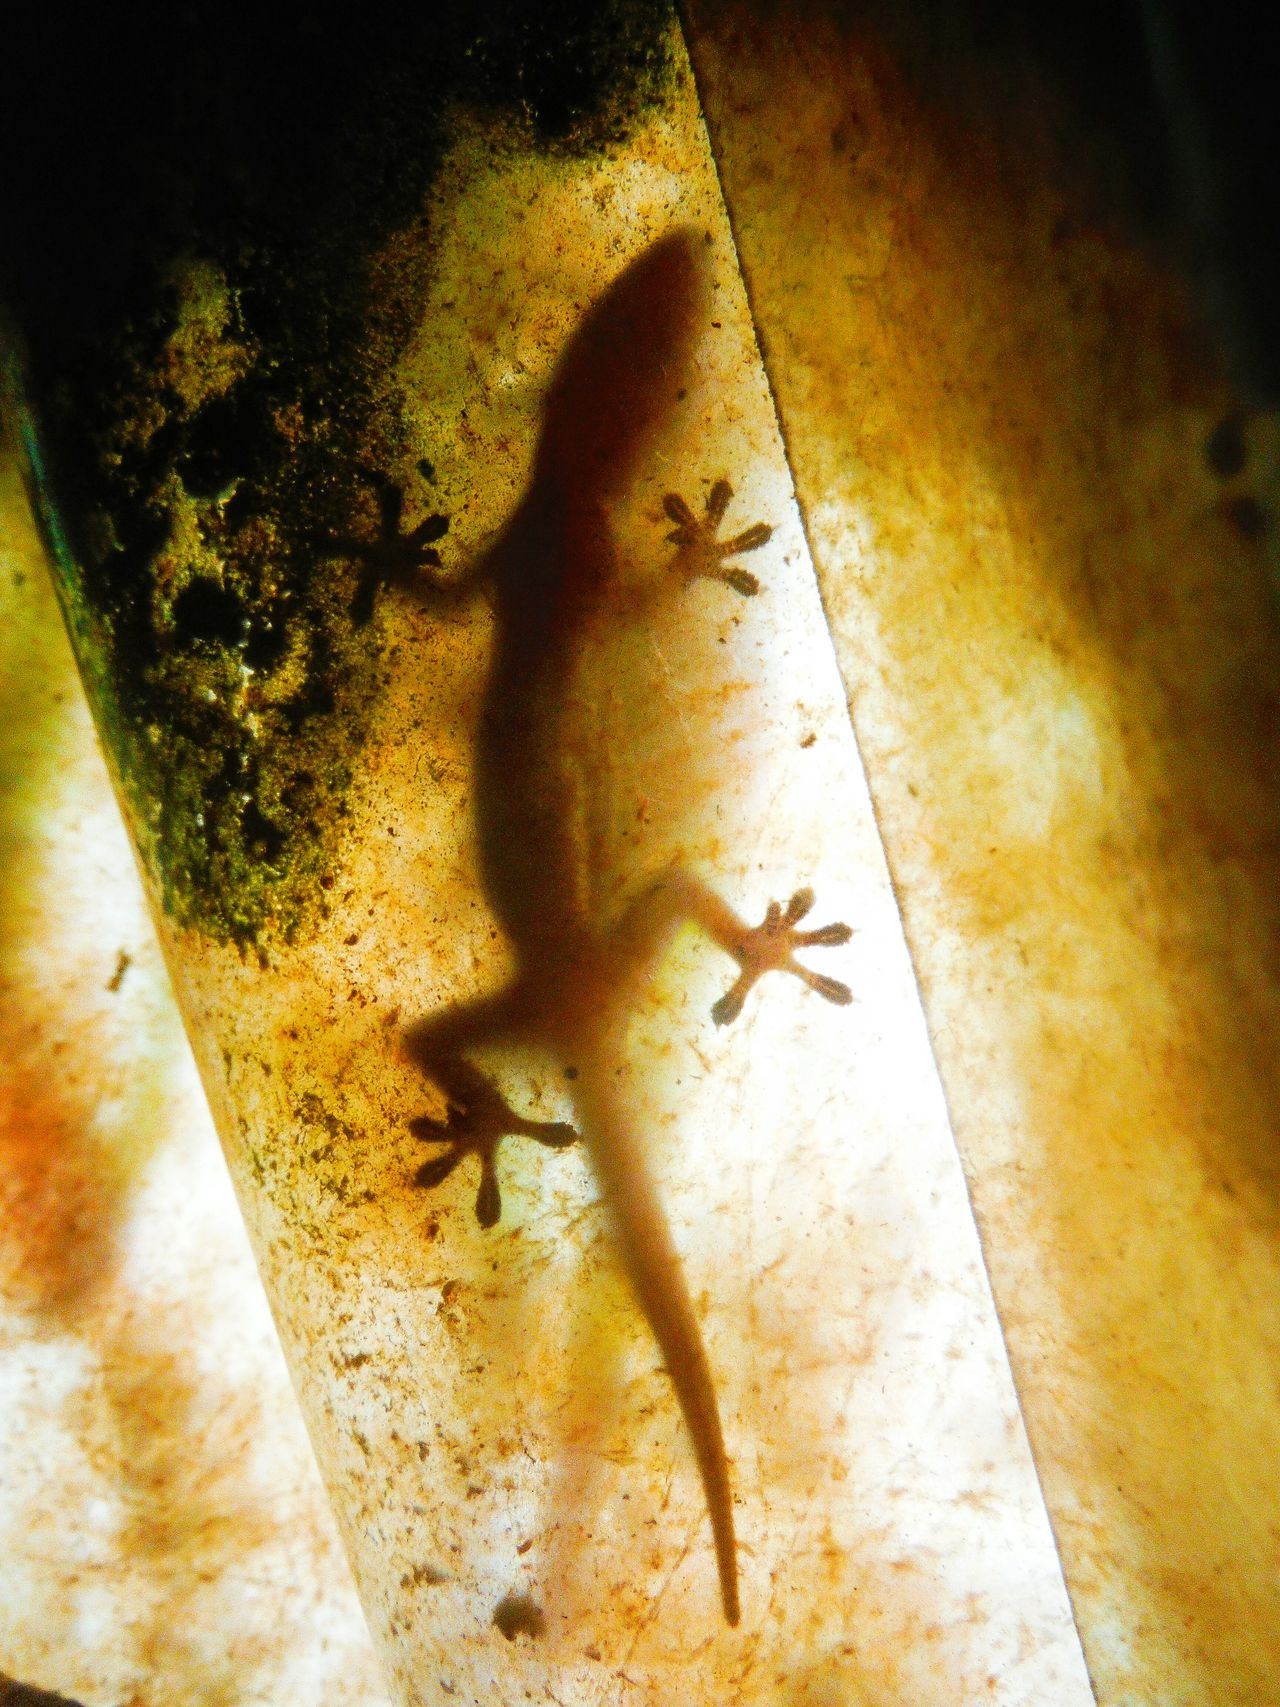 Got a little visitor in my bungalow 🐉 Silhoutte Photography Animal Silhouette Gecko Gecko Lizard Geckos Gecko Silhouette Gecko Shadow Geckolove Lizard Lizard Love Lizard Friend Lizard Close Up Unexpected Visitor Unexpected Guest Koh Chang Ko Chang Thailand EyeEm Thailand Fujifilm Finepix Xp60